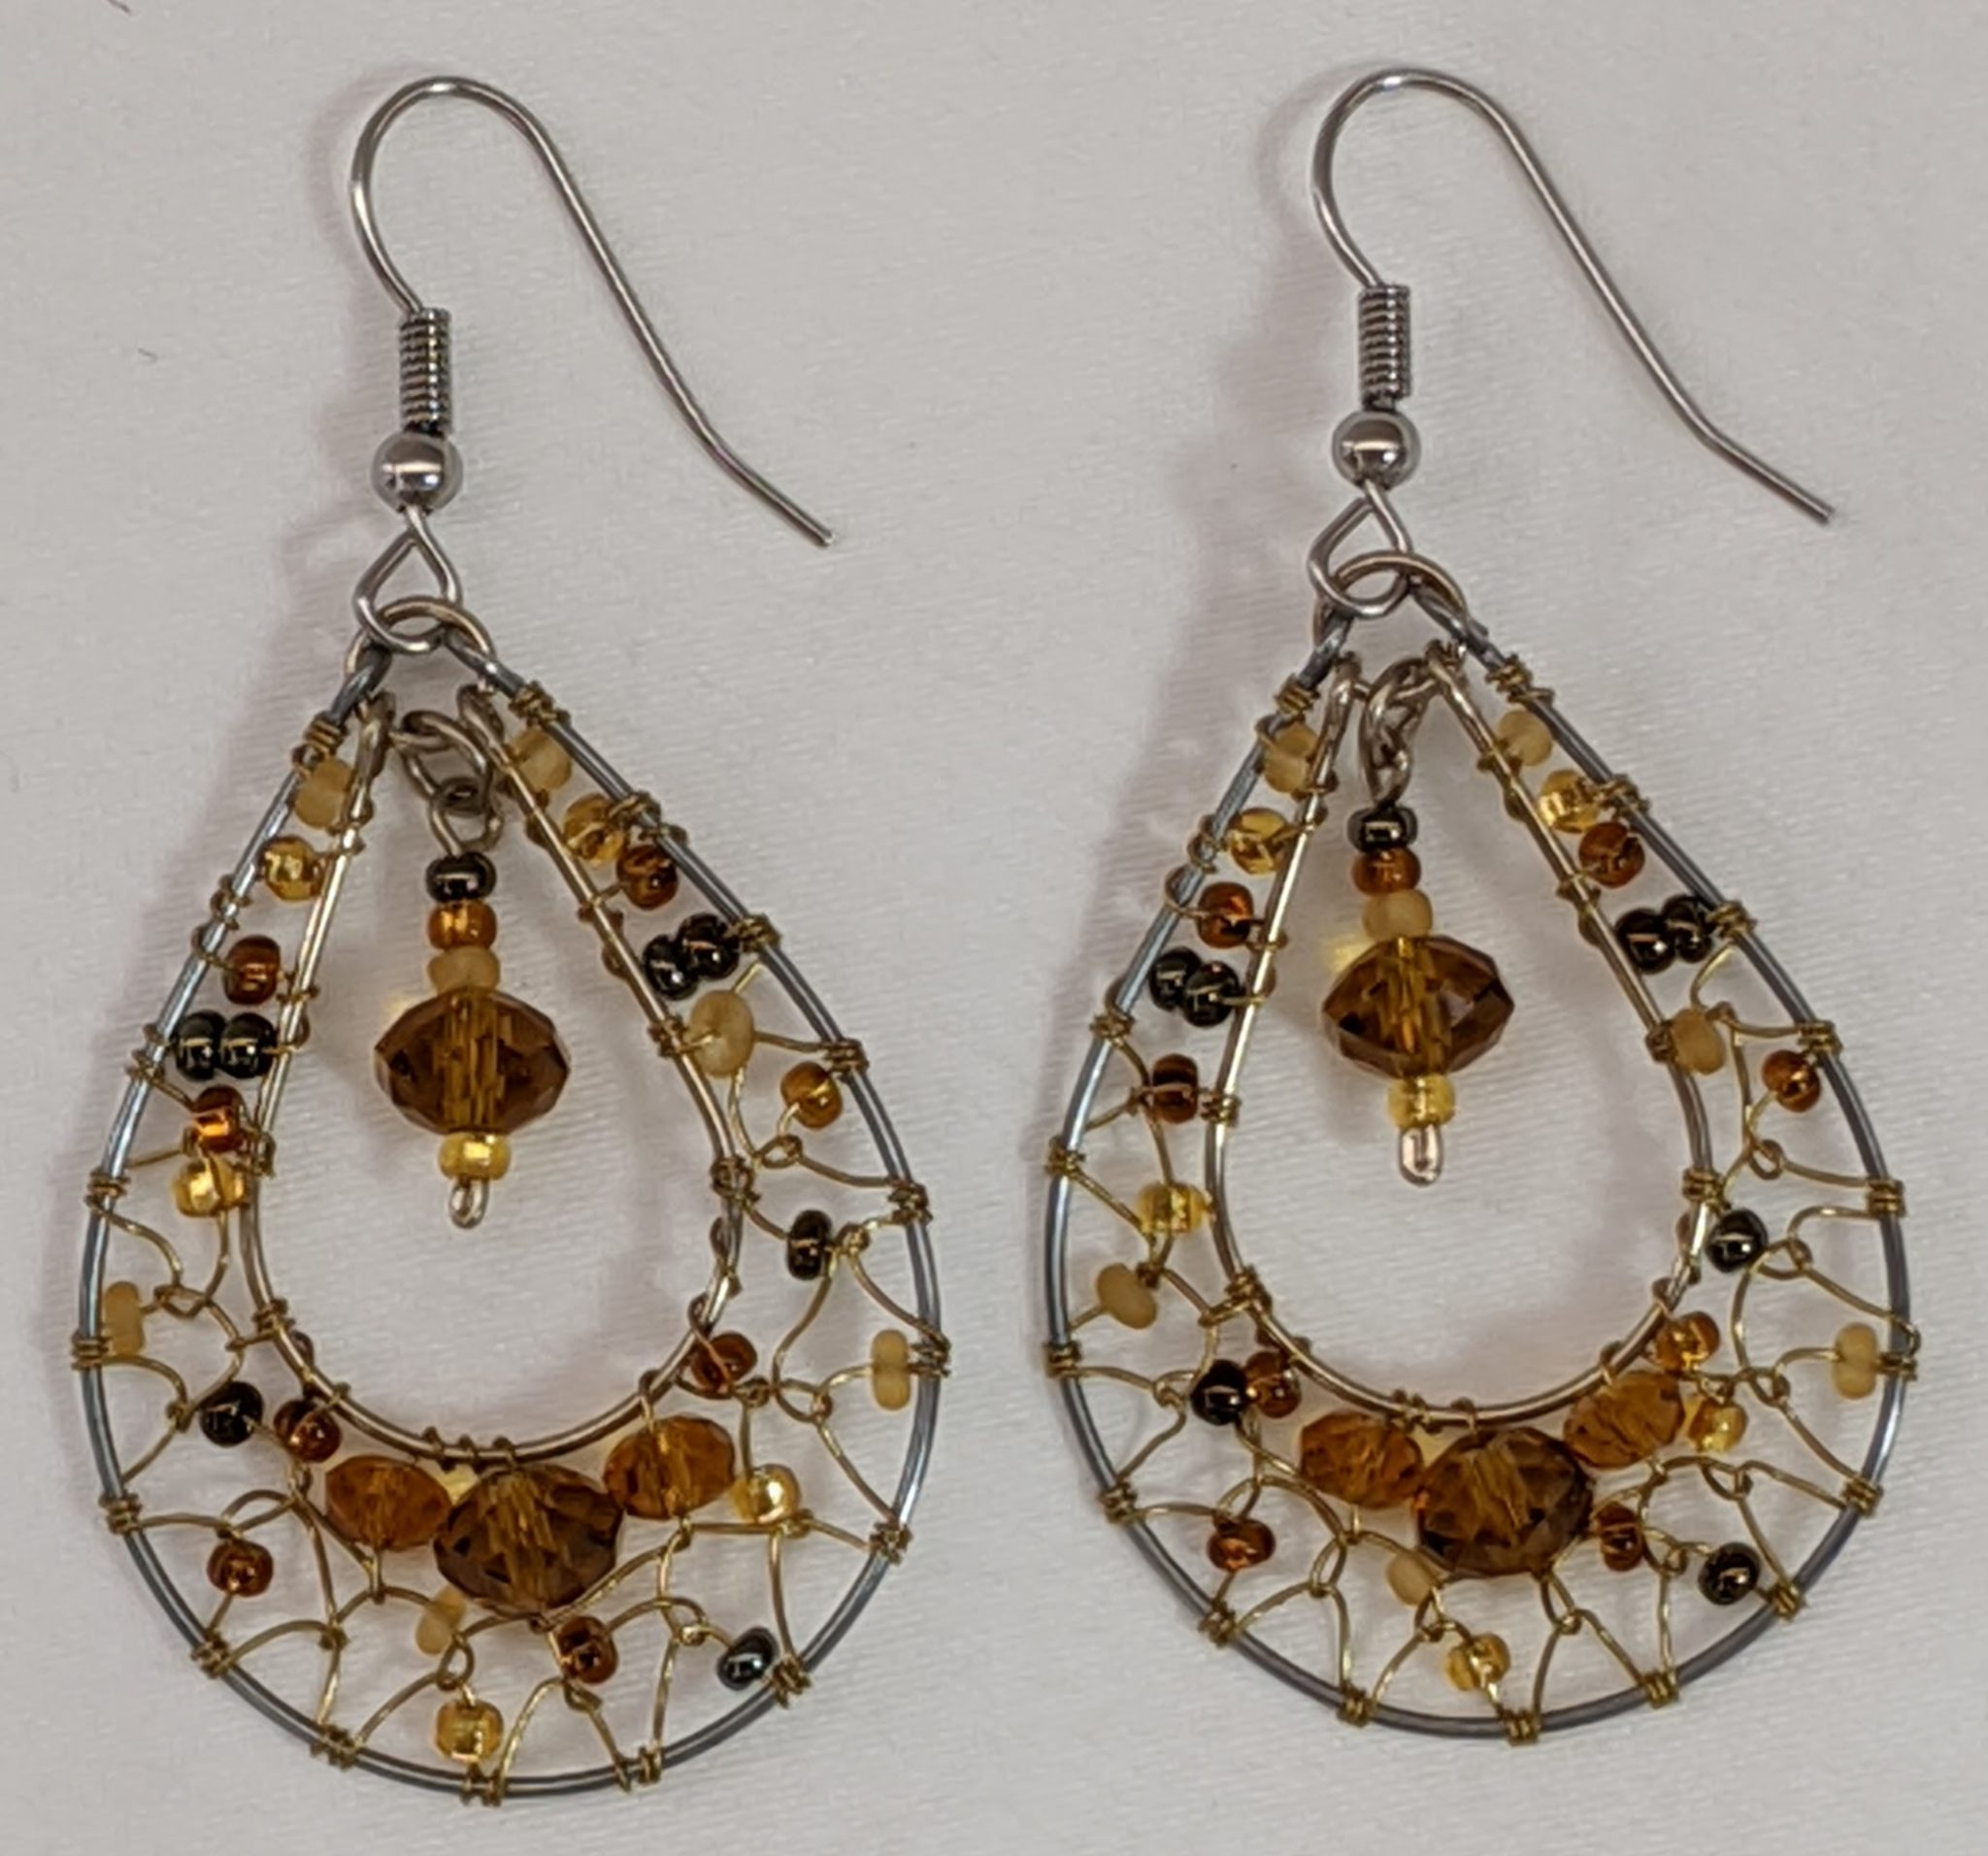 Teardrop Dreamcatcher Earrings - Golds